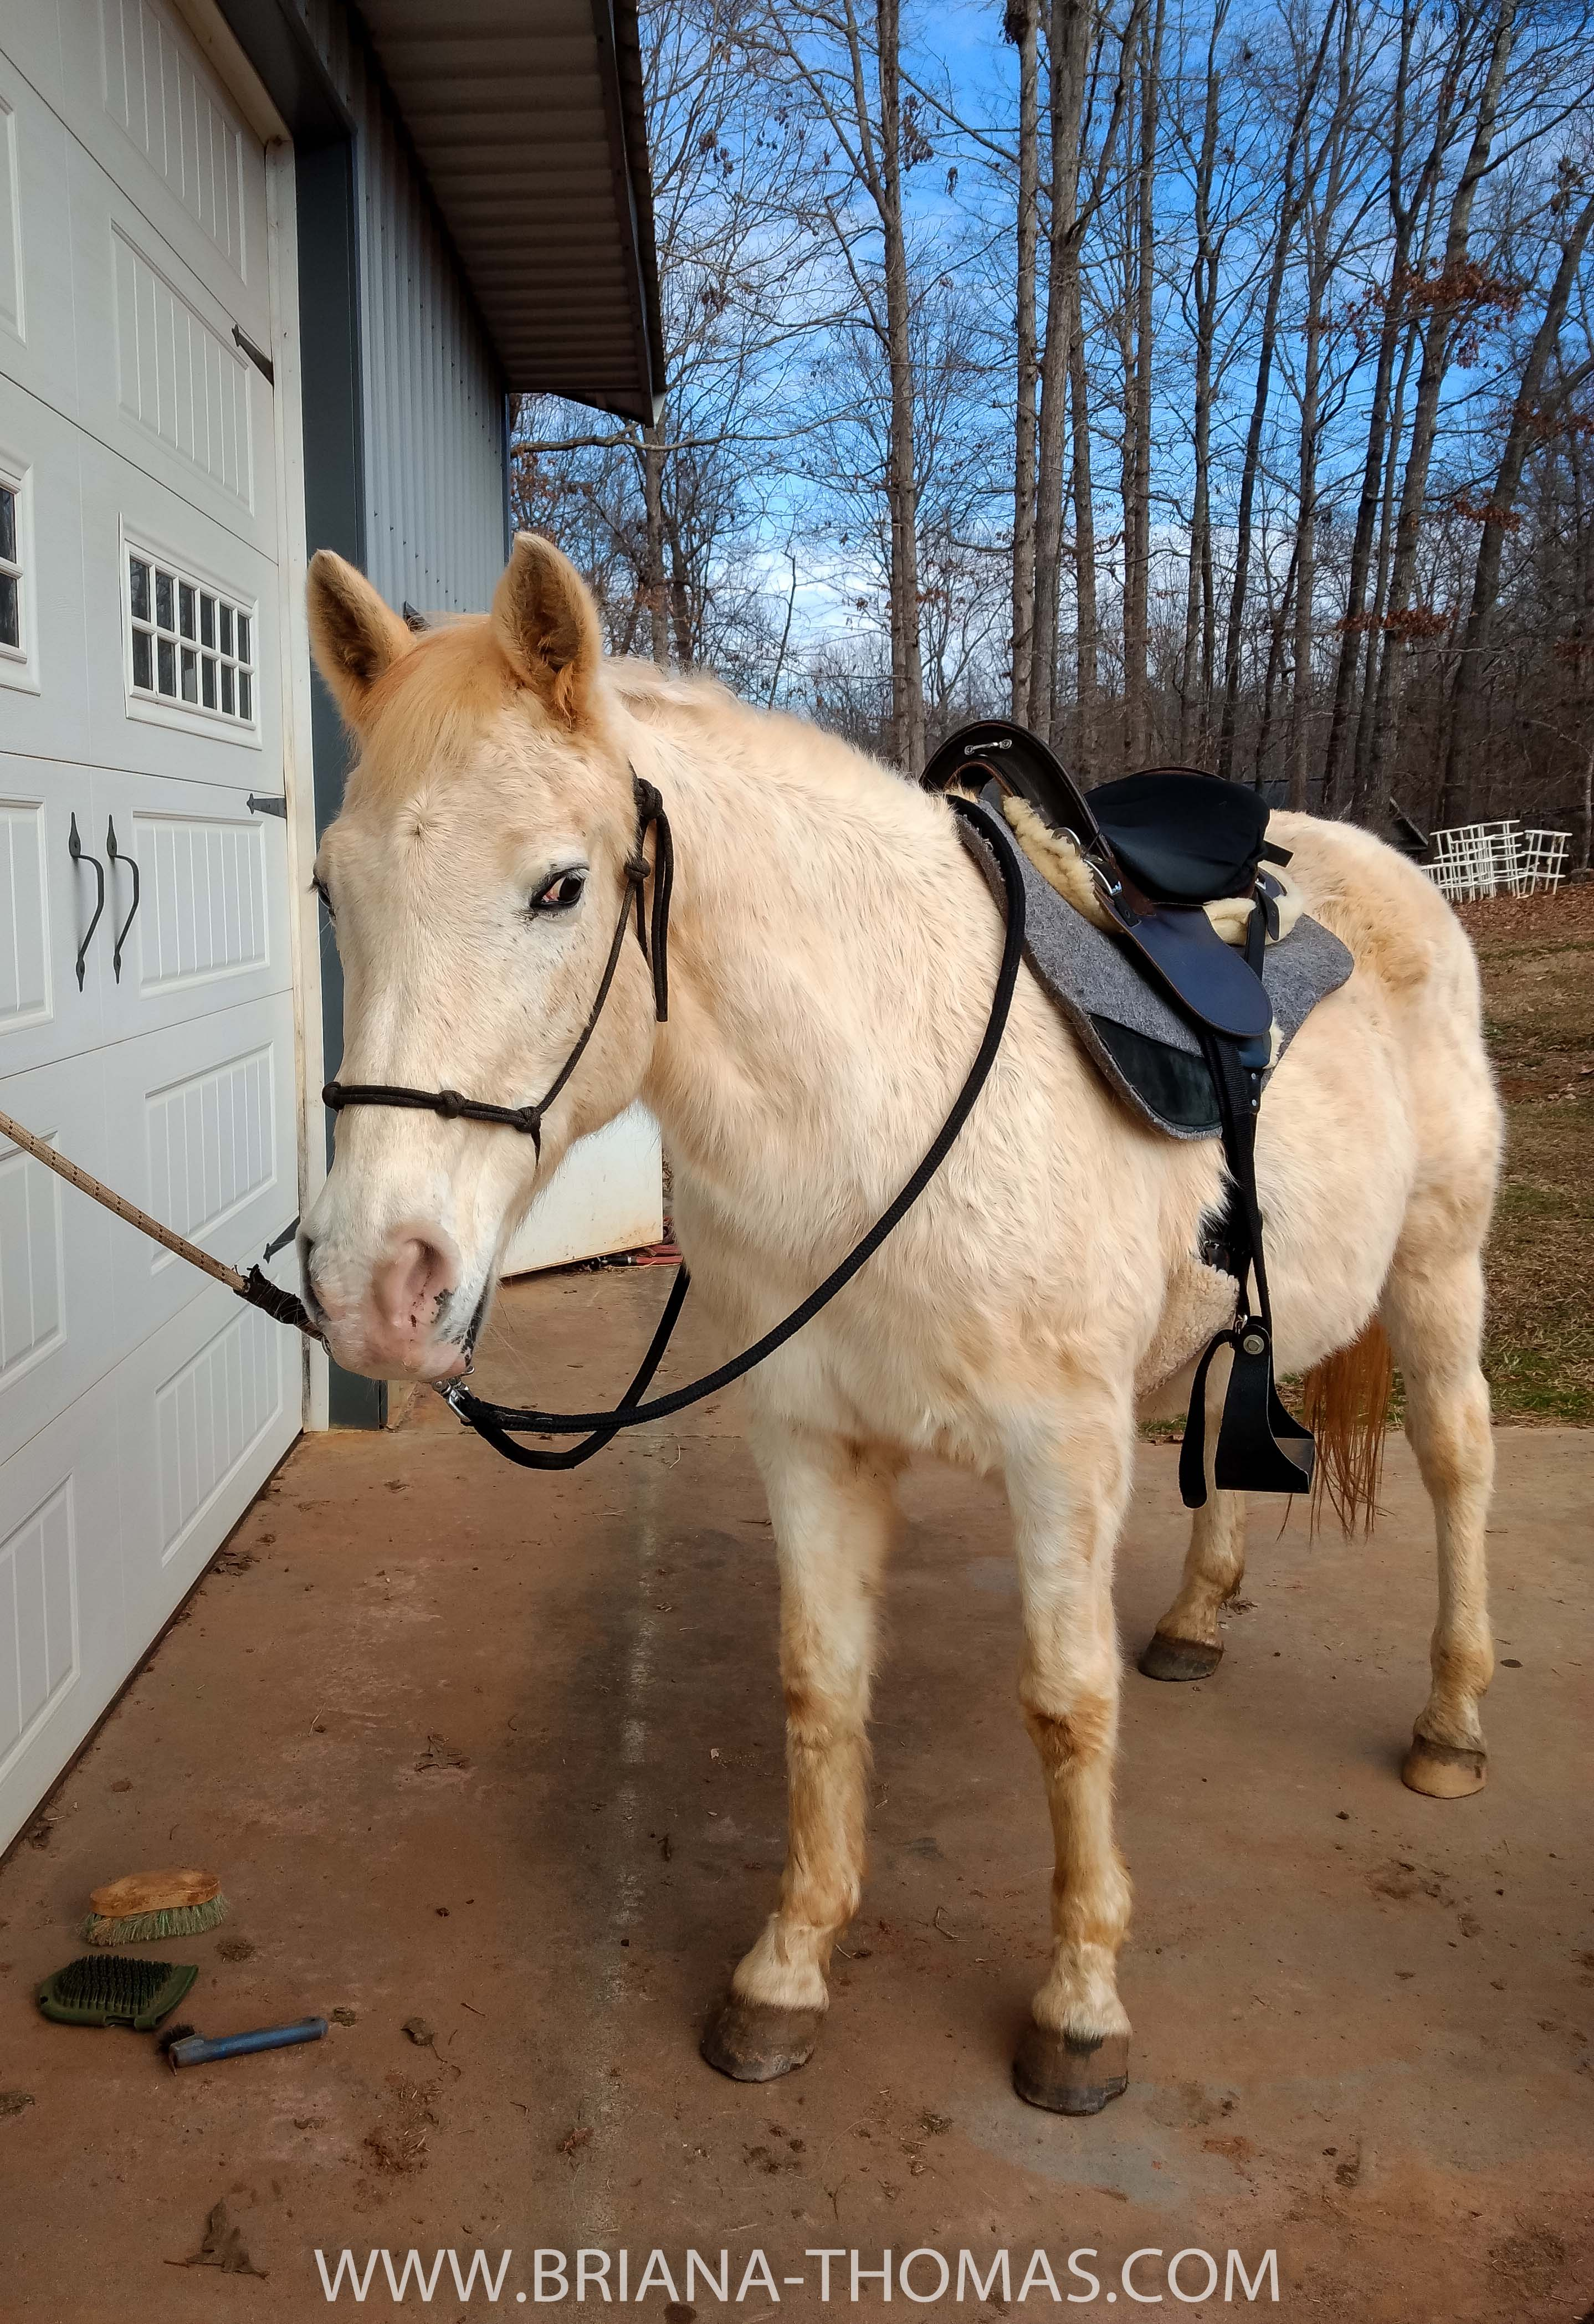 Traveler, the horse, ready for a ride